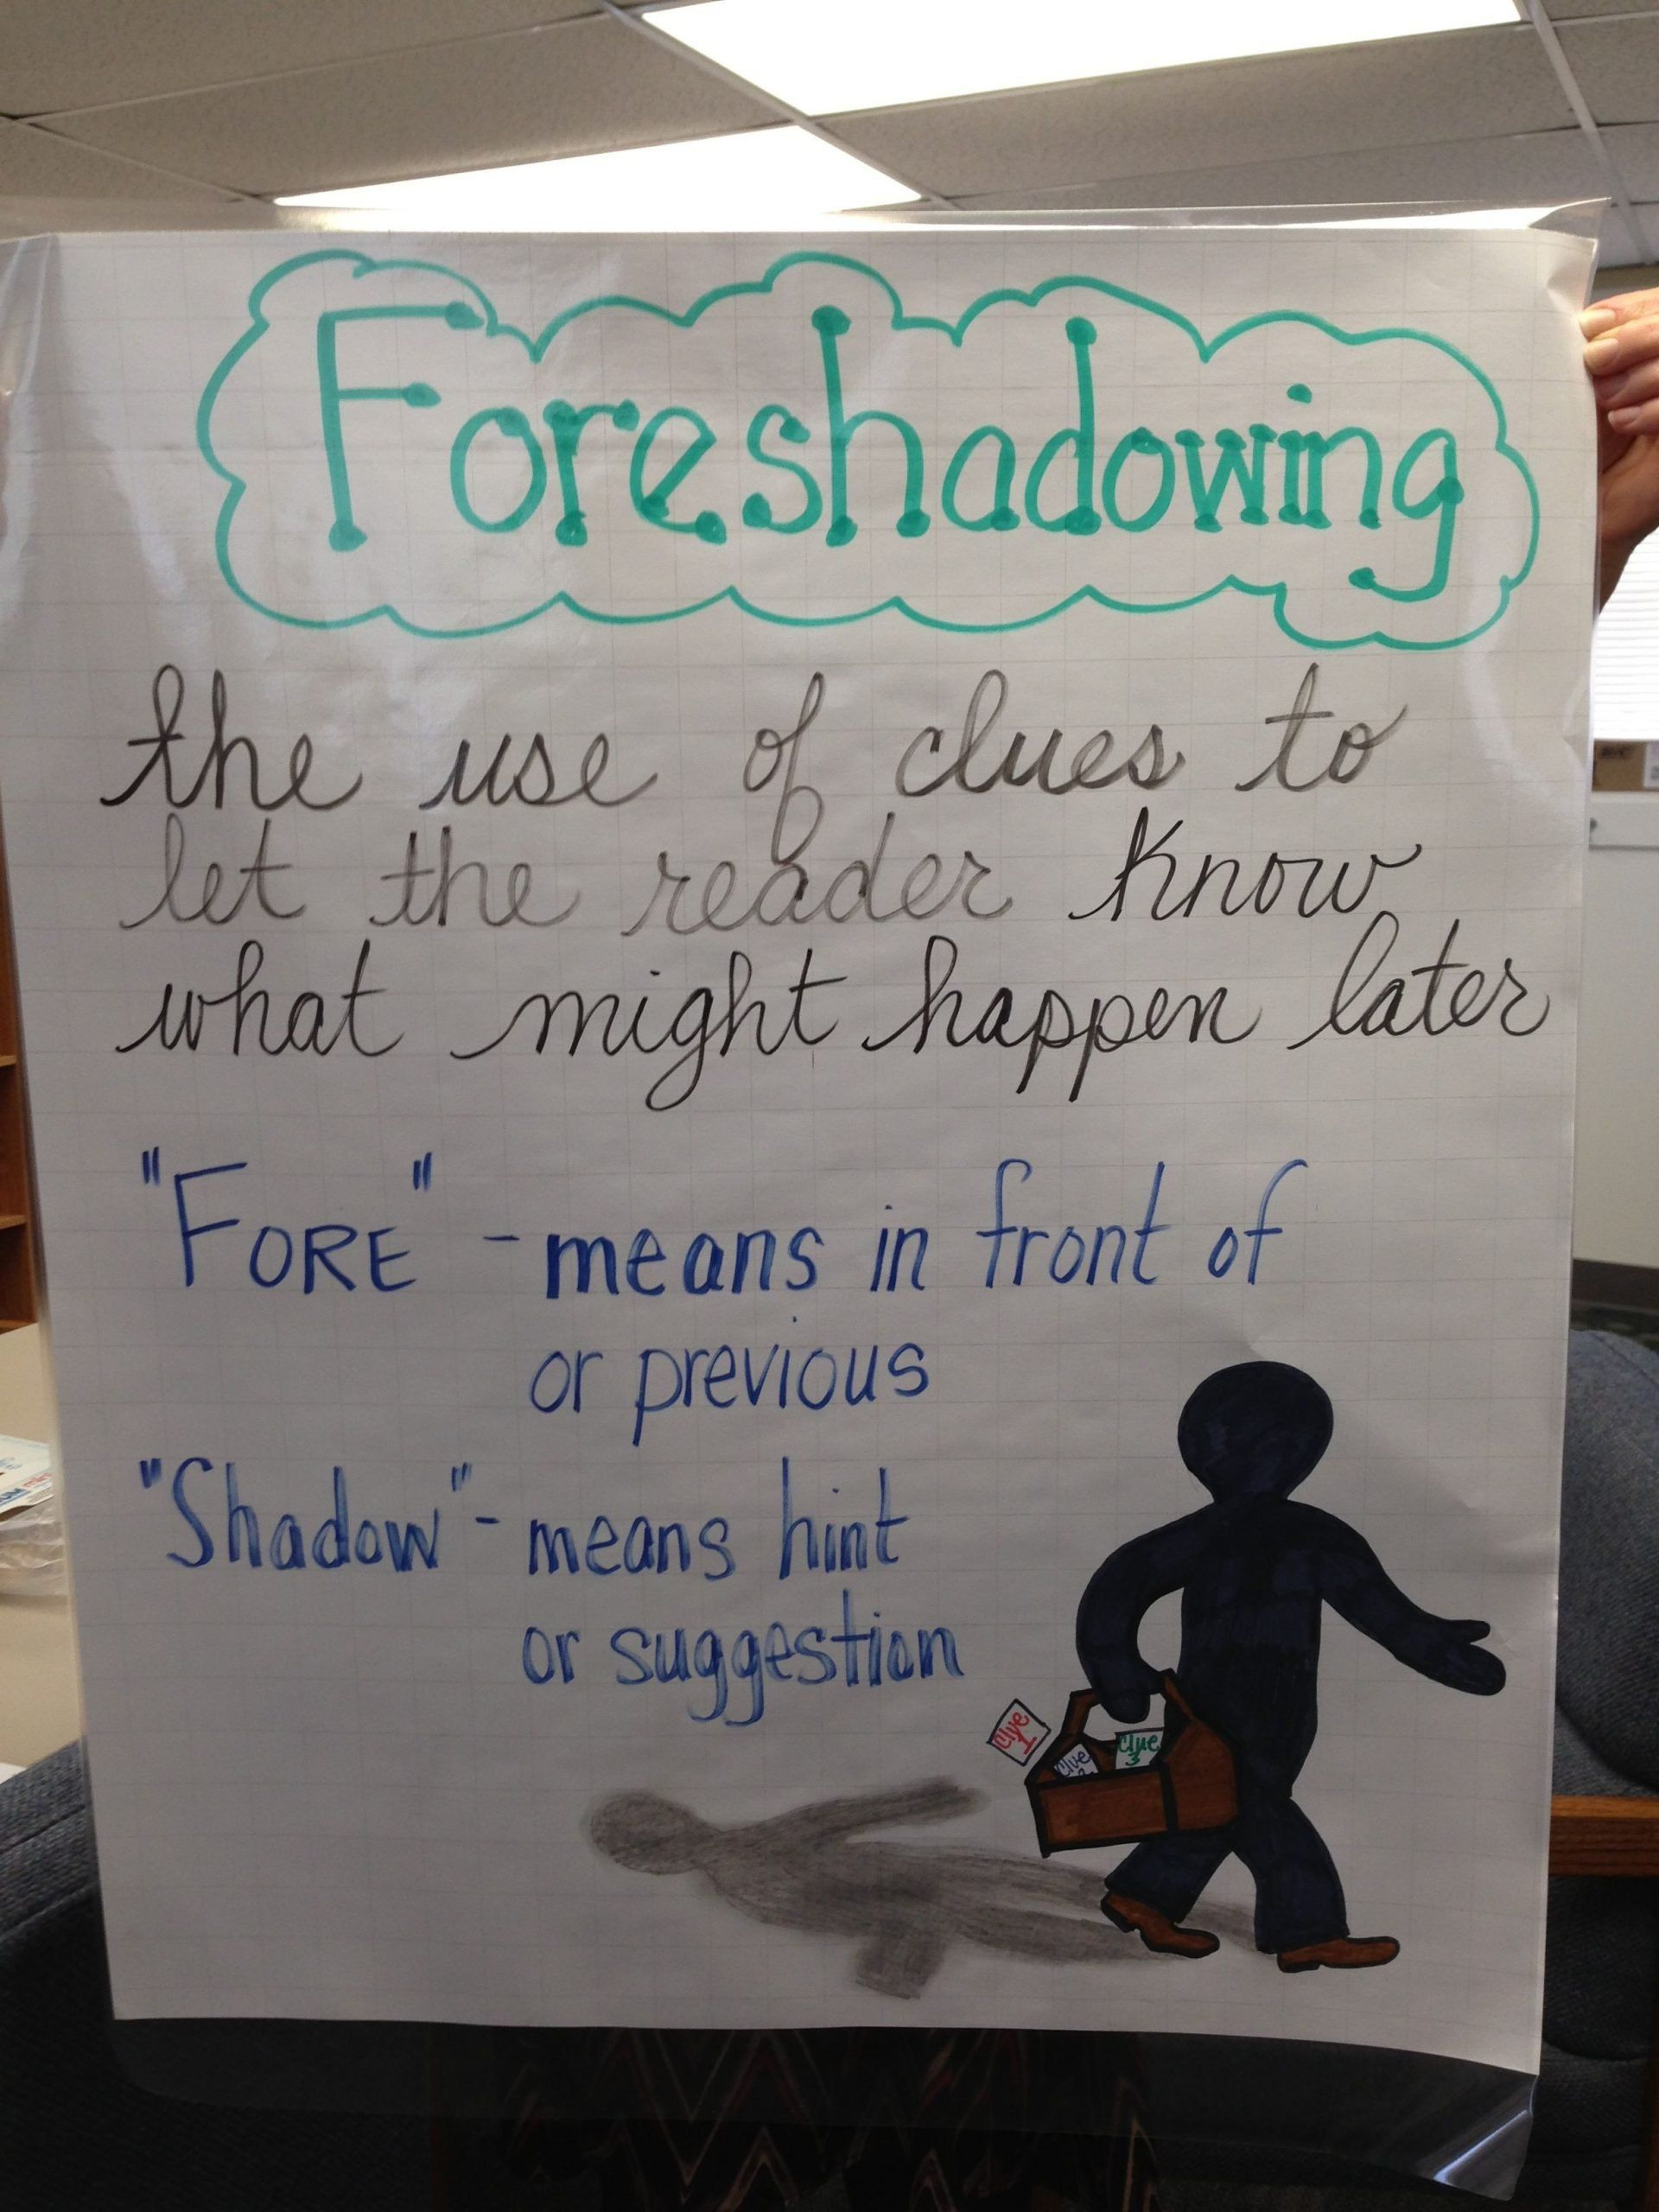 Foreshadowing Worksheet Middle School foreshadowing Anchor Chart   Anchor  charts [ 2560 x 1920 Pixel ]